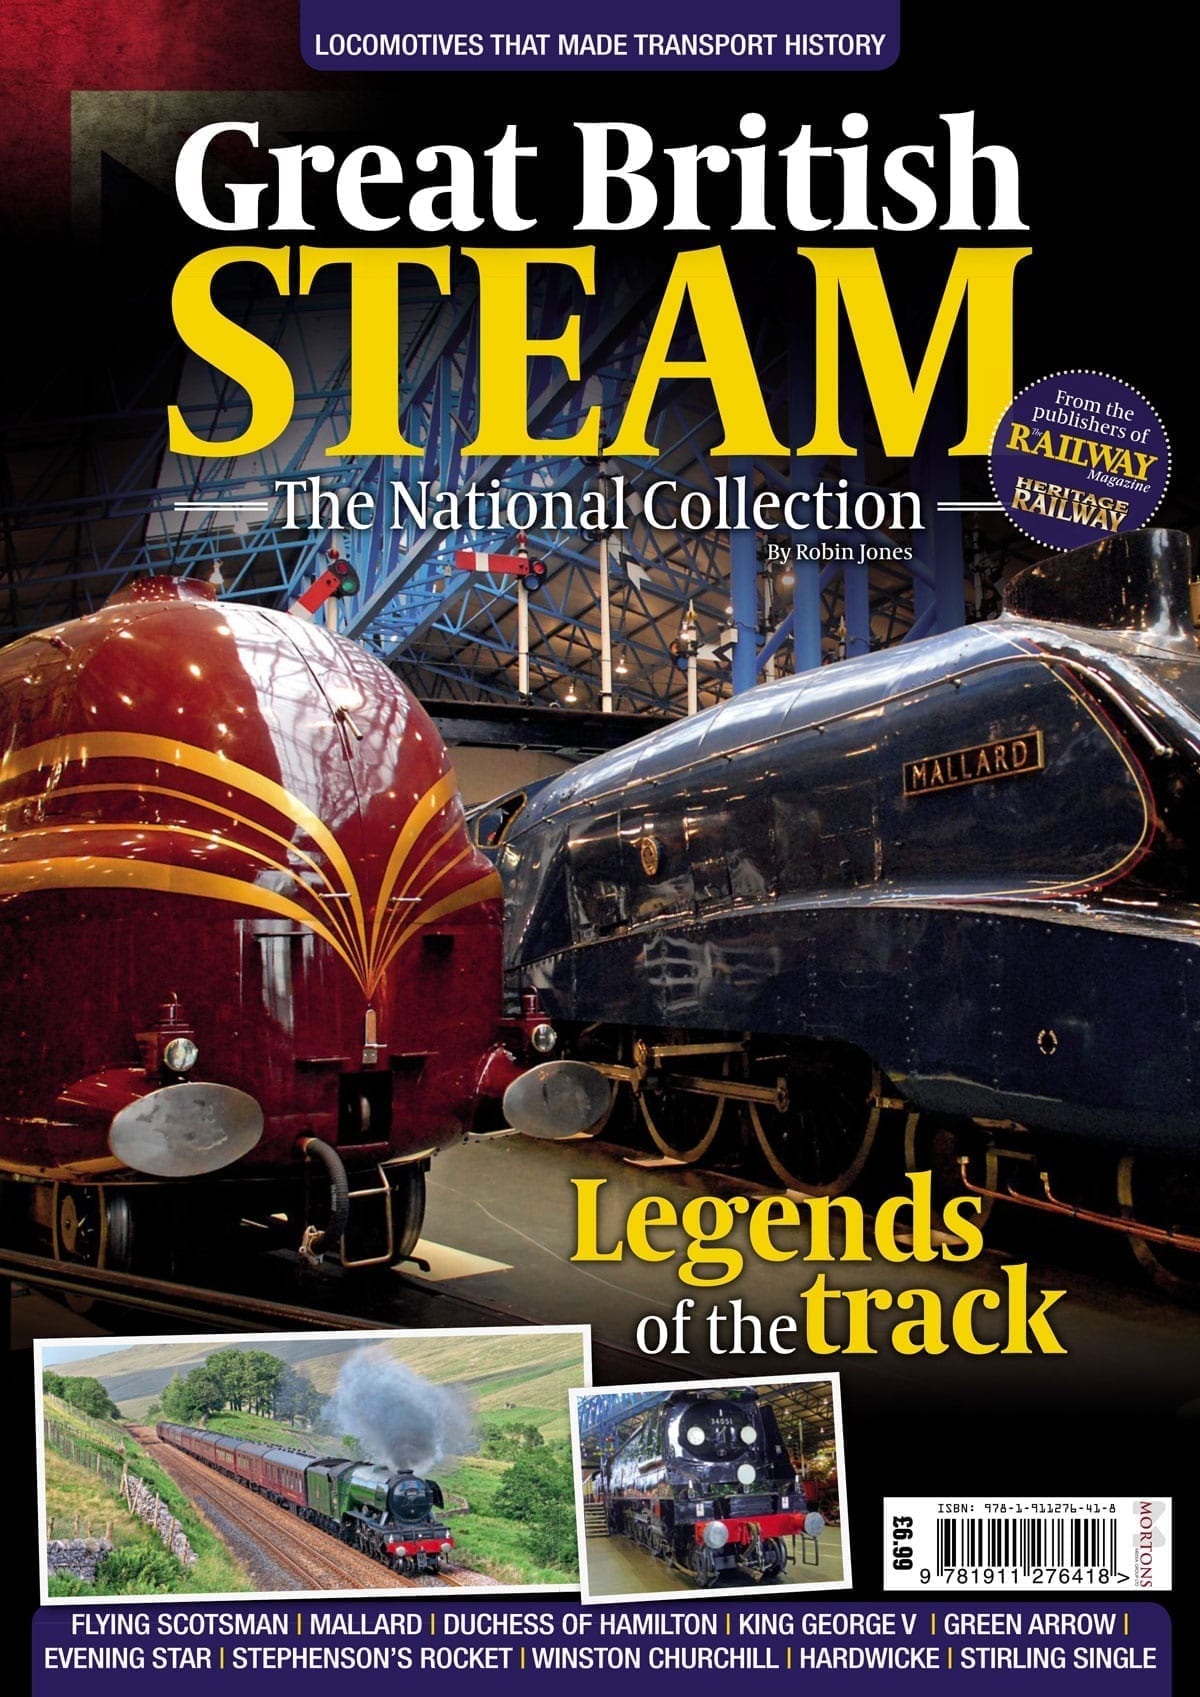 Great British Steam The National Collection